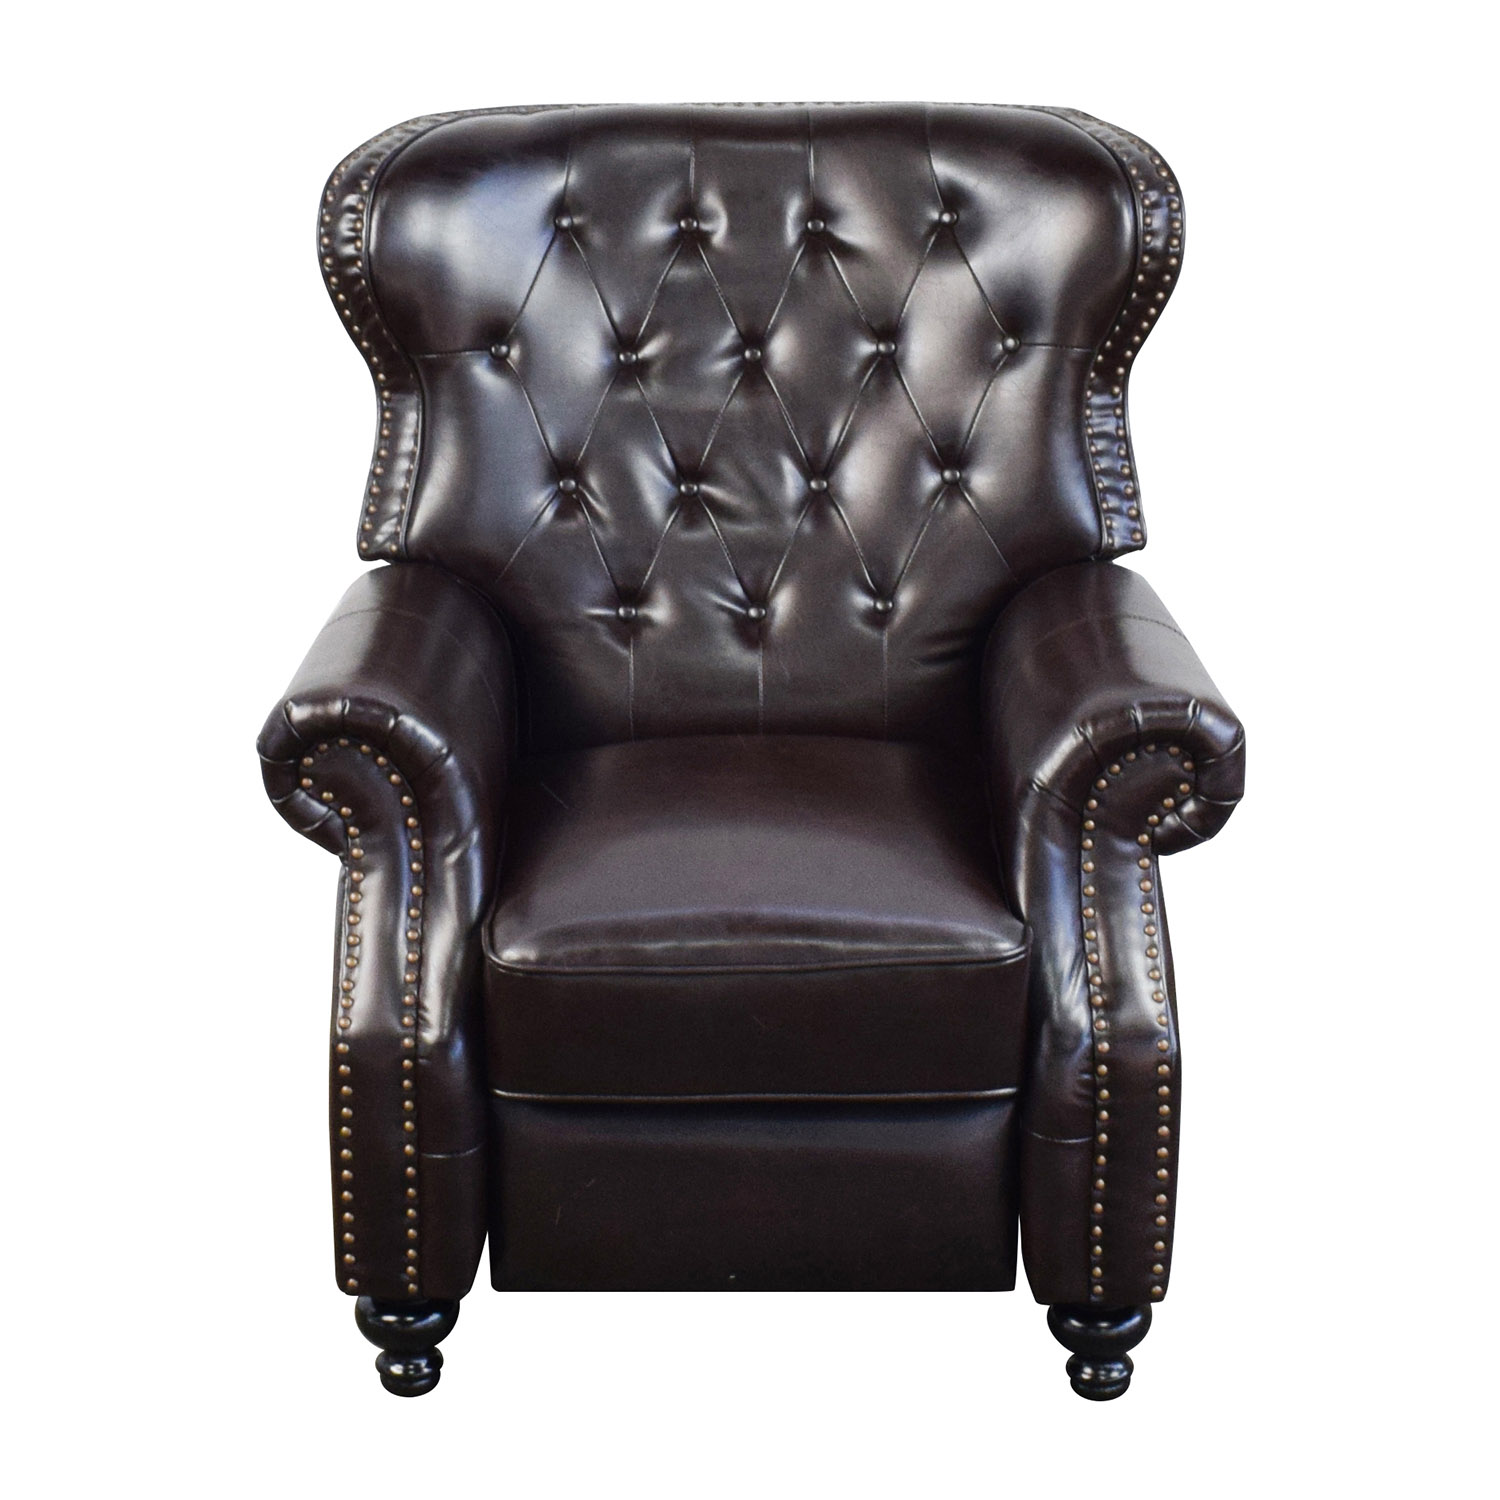 Tufted Brown Leather Recliner / Recliners